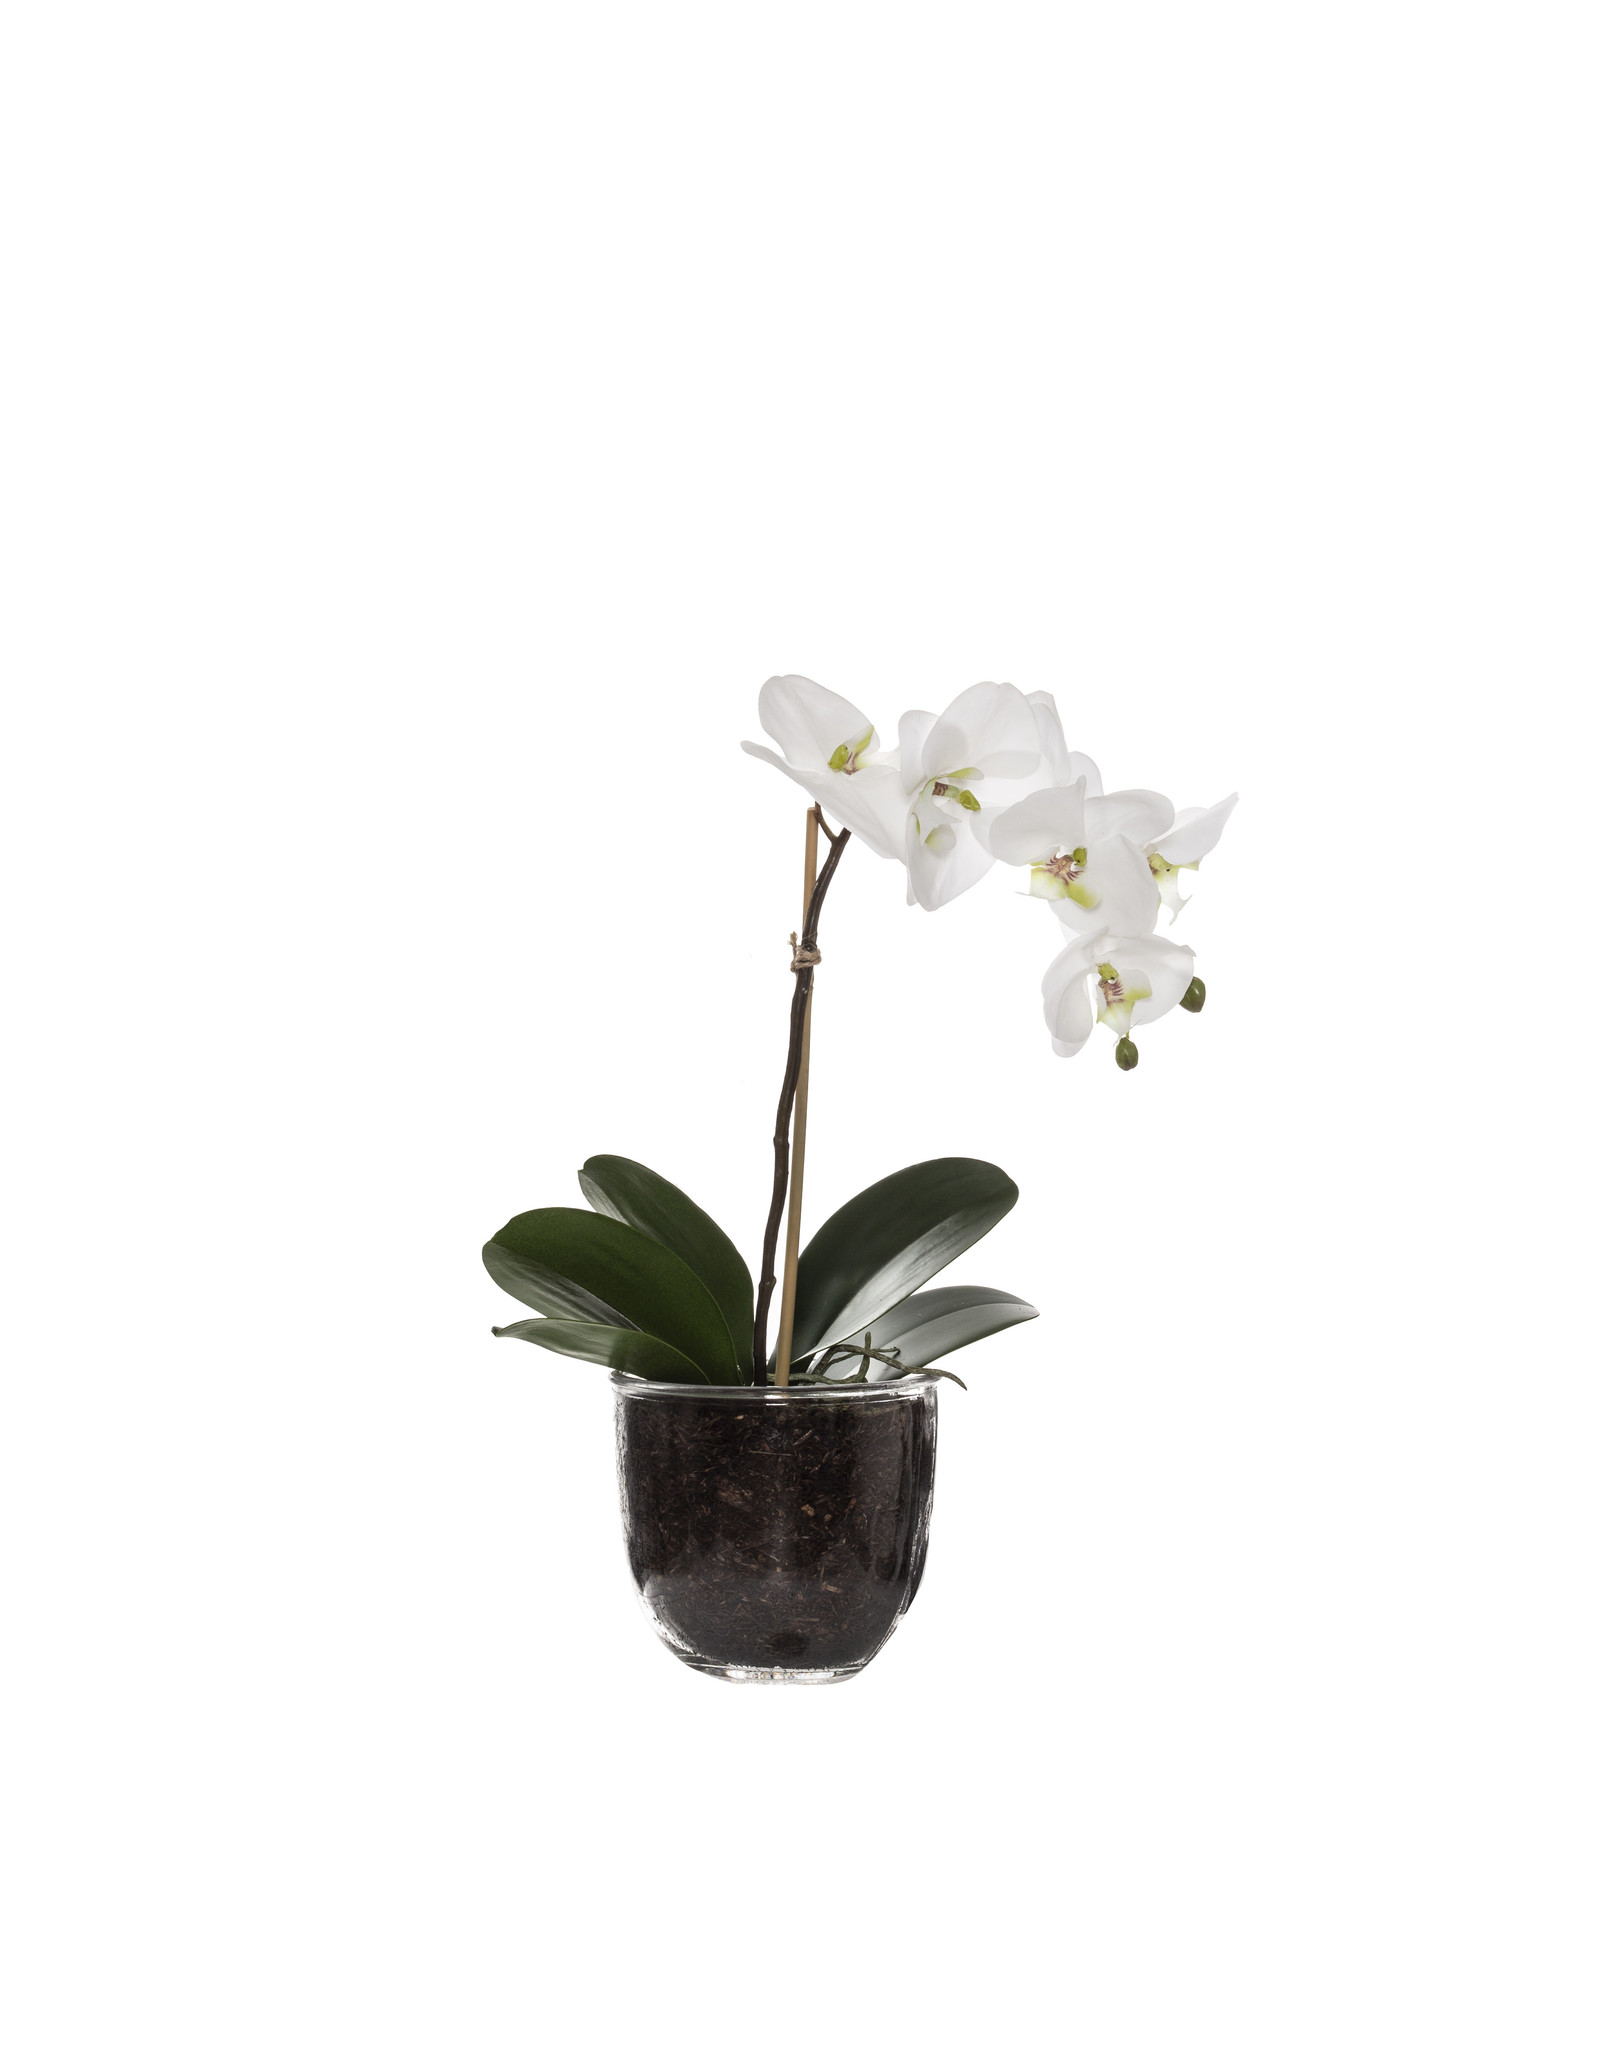 Deluxe Phalanopsis Orchid Glass